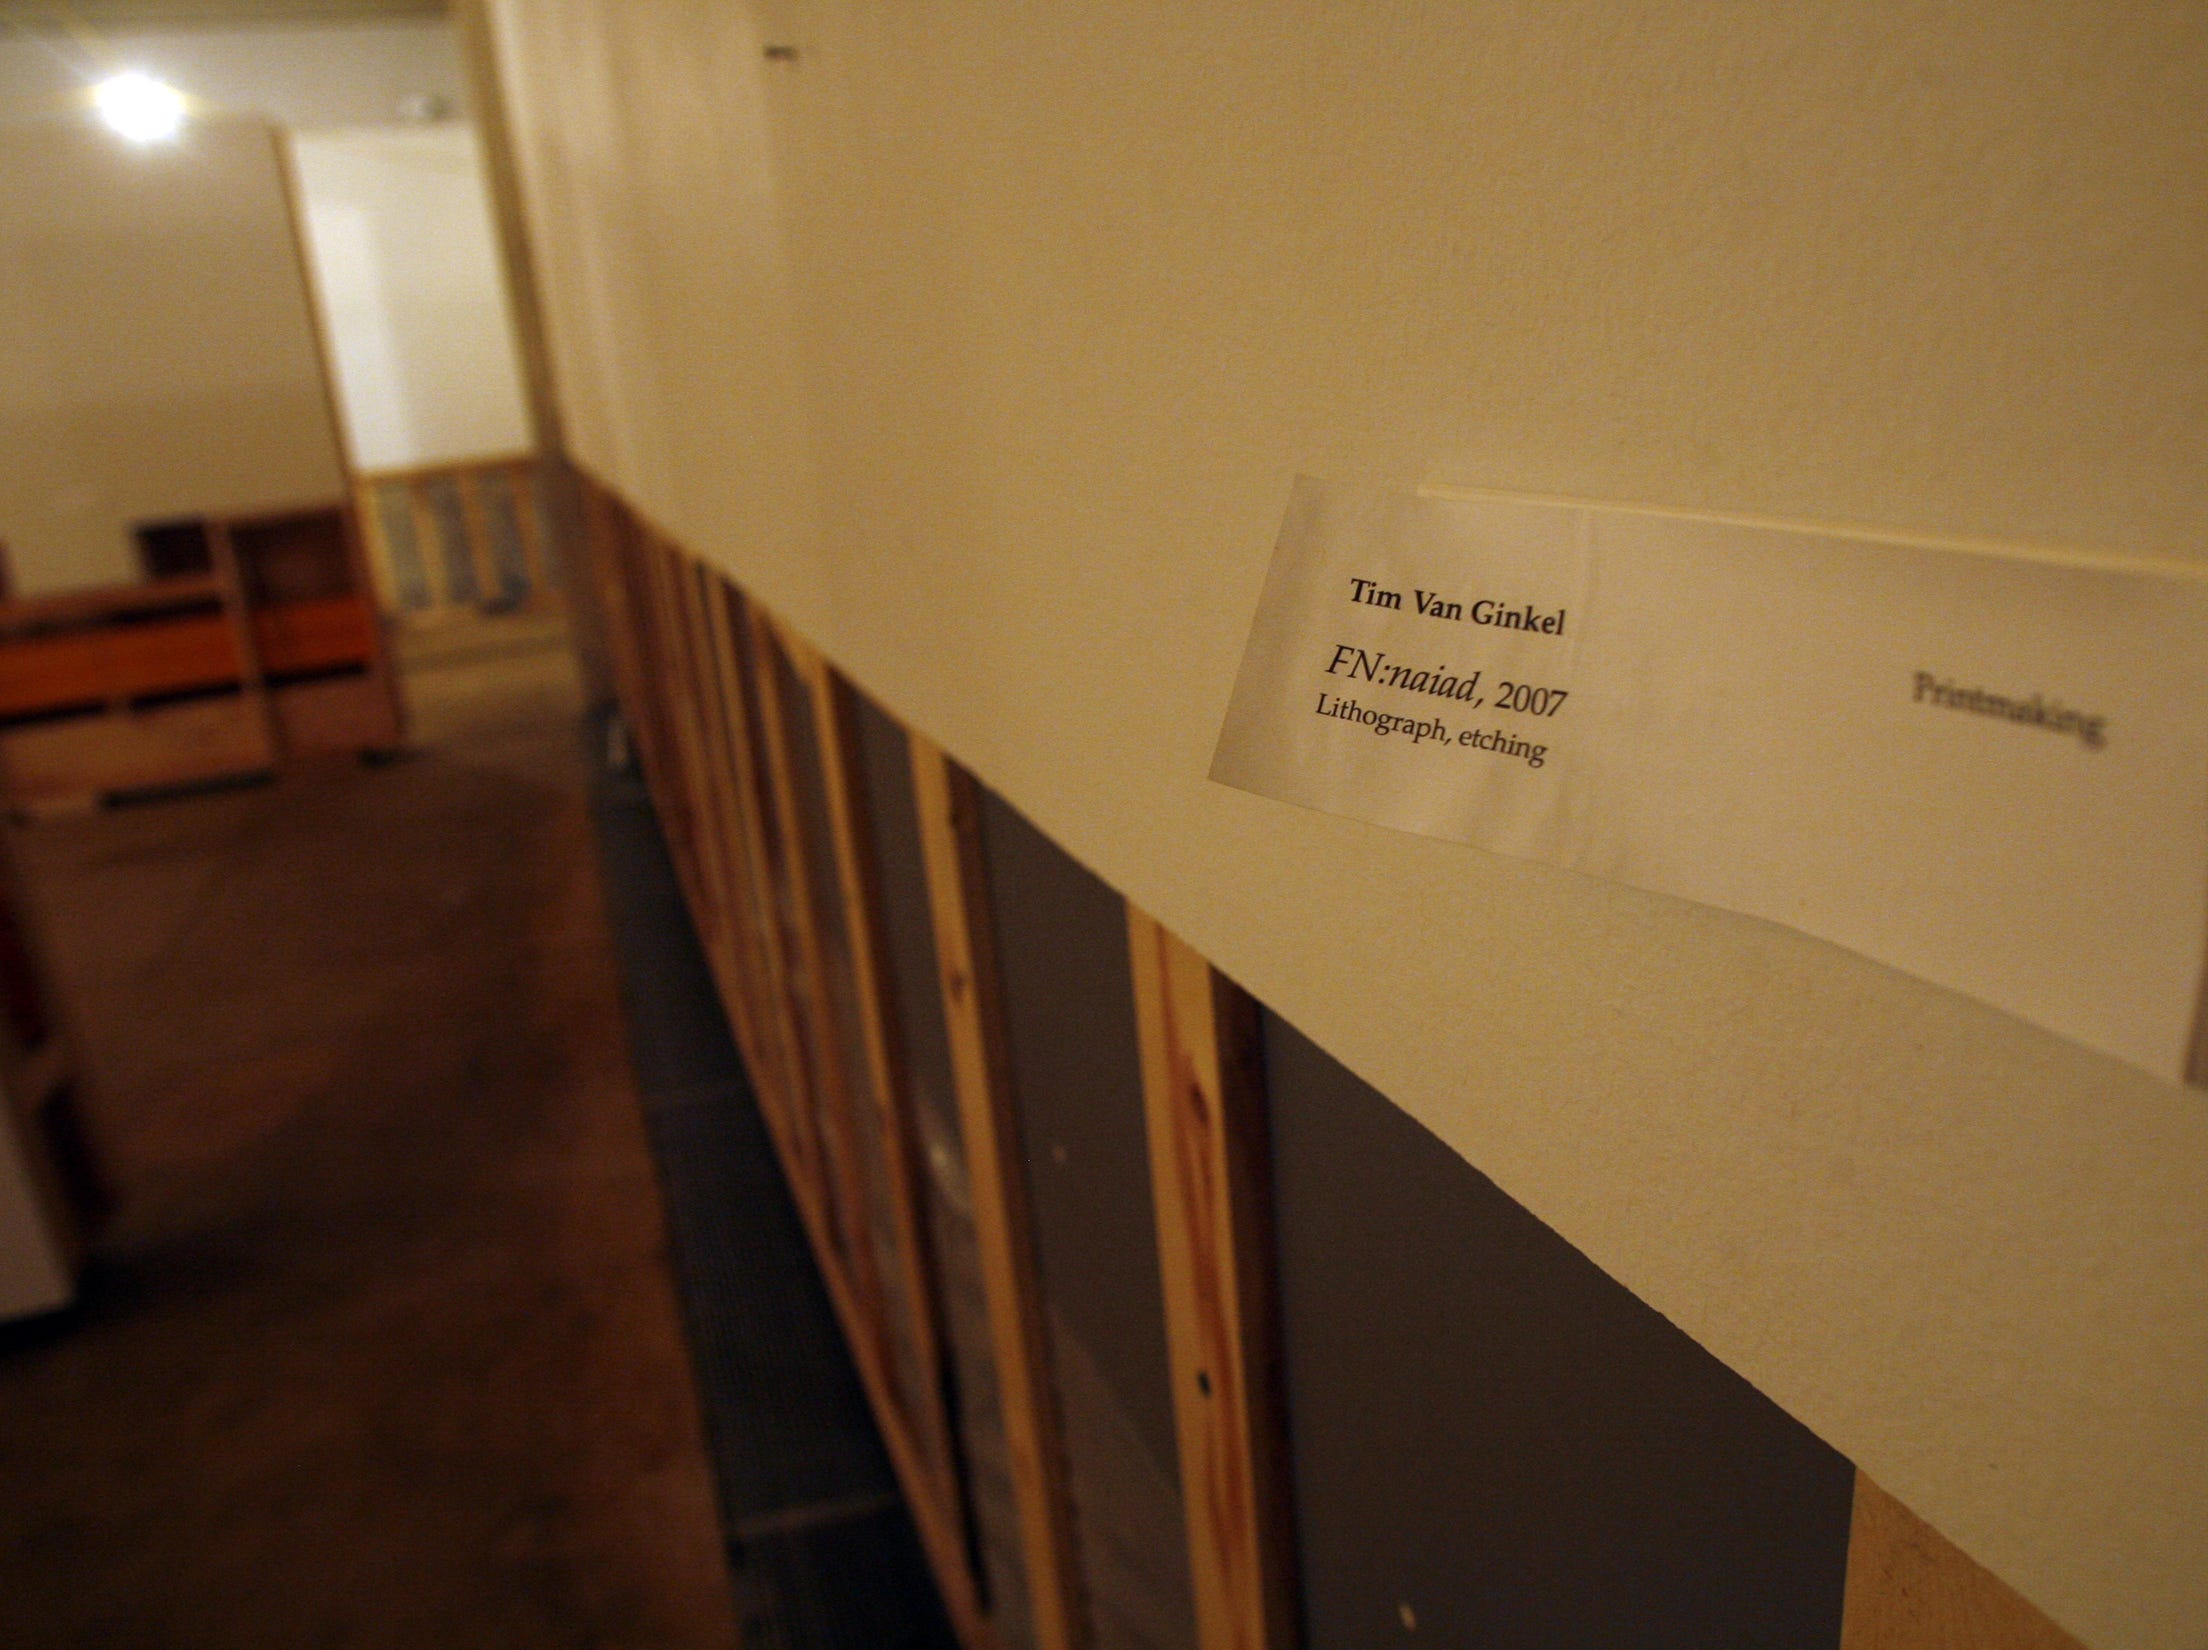 A placard for a piece of art remains on the wall during cleanup efforts at the UI Museum of Art, Wednesday, August 6, 2008, on the University of Iowa campus, in Iowa City, Iowa.